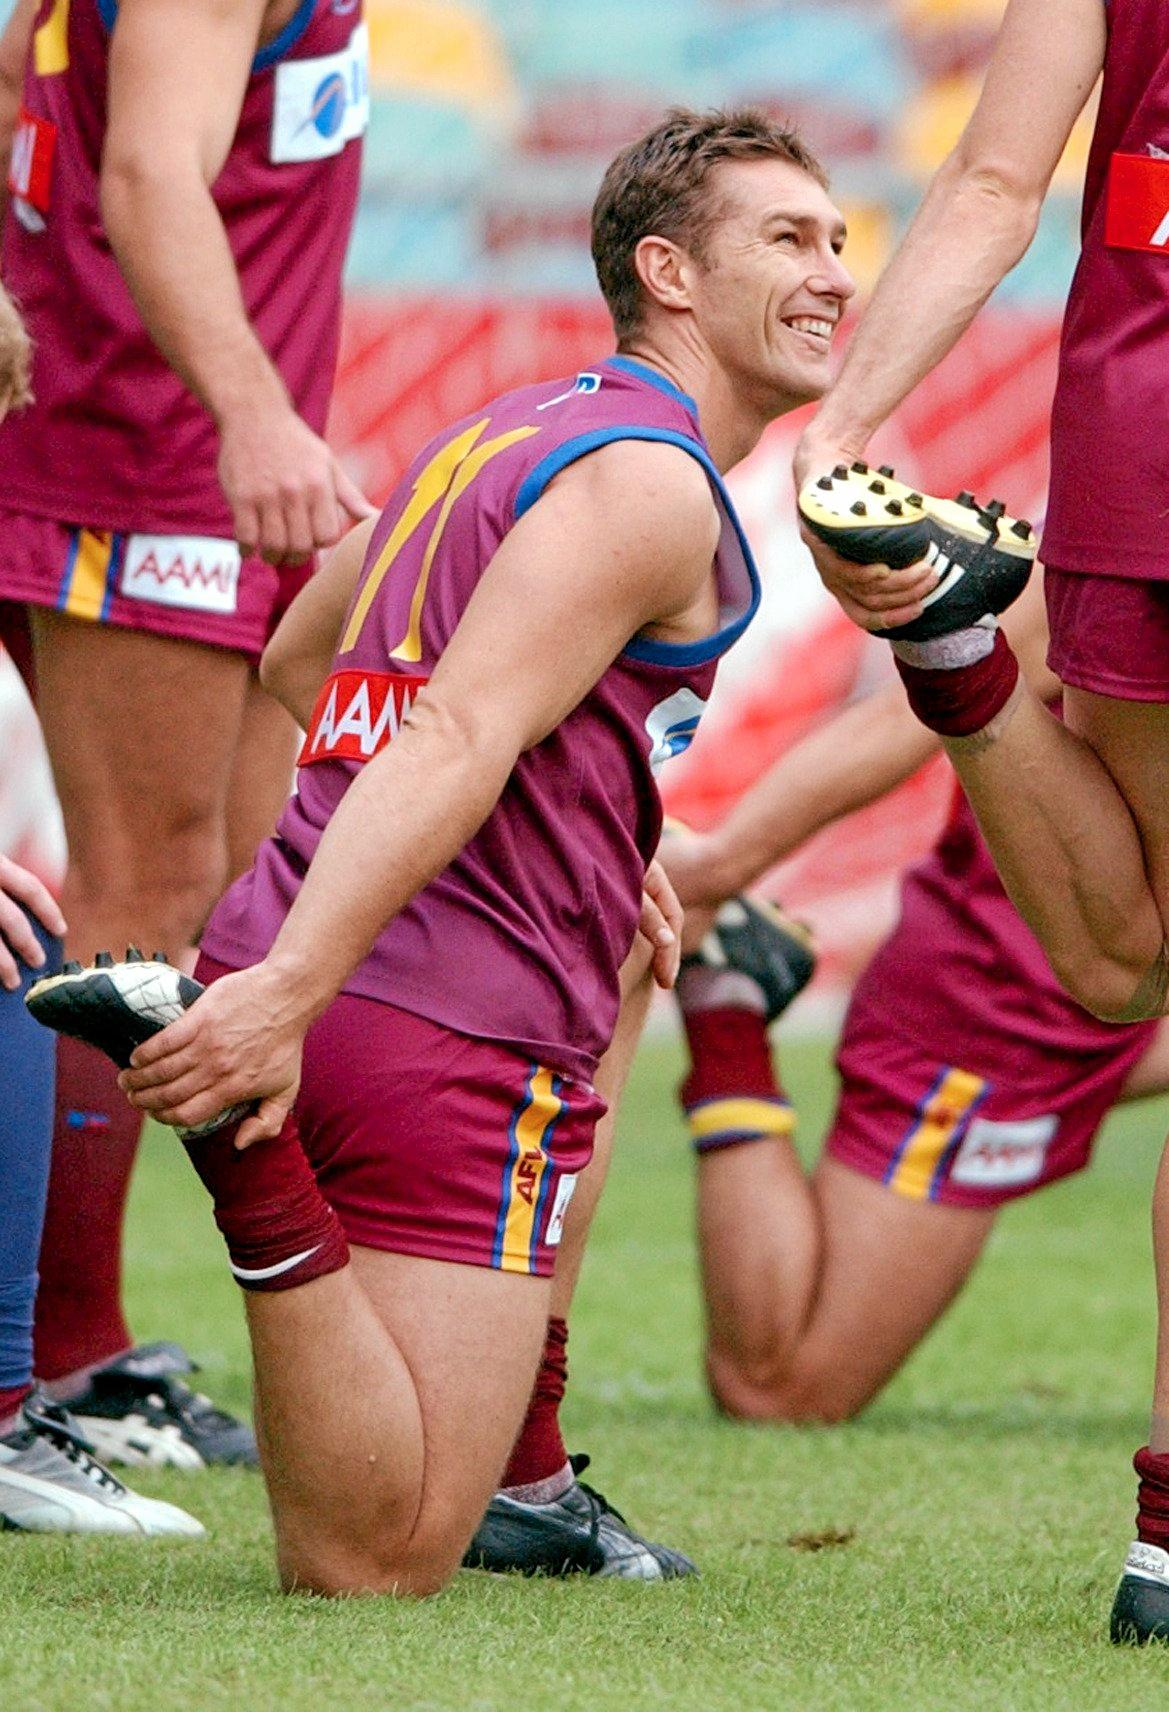 Brisbane, May 3, 2002. Alastair Lynch  stretches at training this afternoon ahead of  the Lion's clash against Geelong at the Gabba this weekend. (AAP Image/Dave Hunt) NO ARCHIVING.